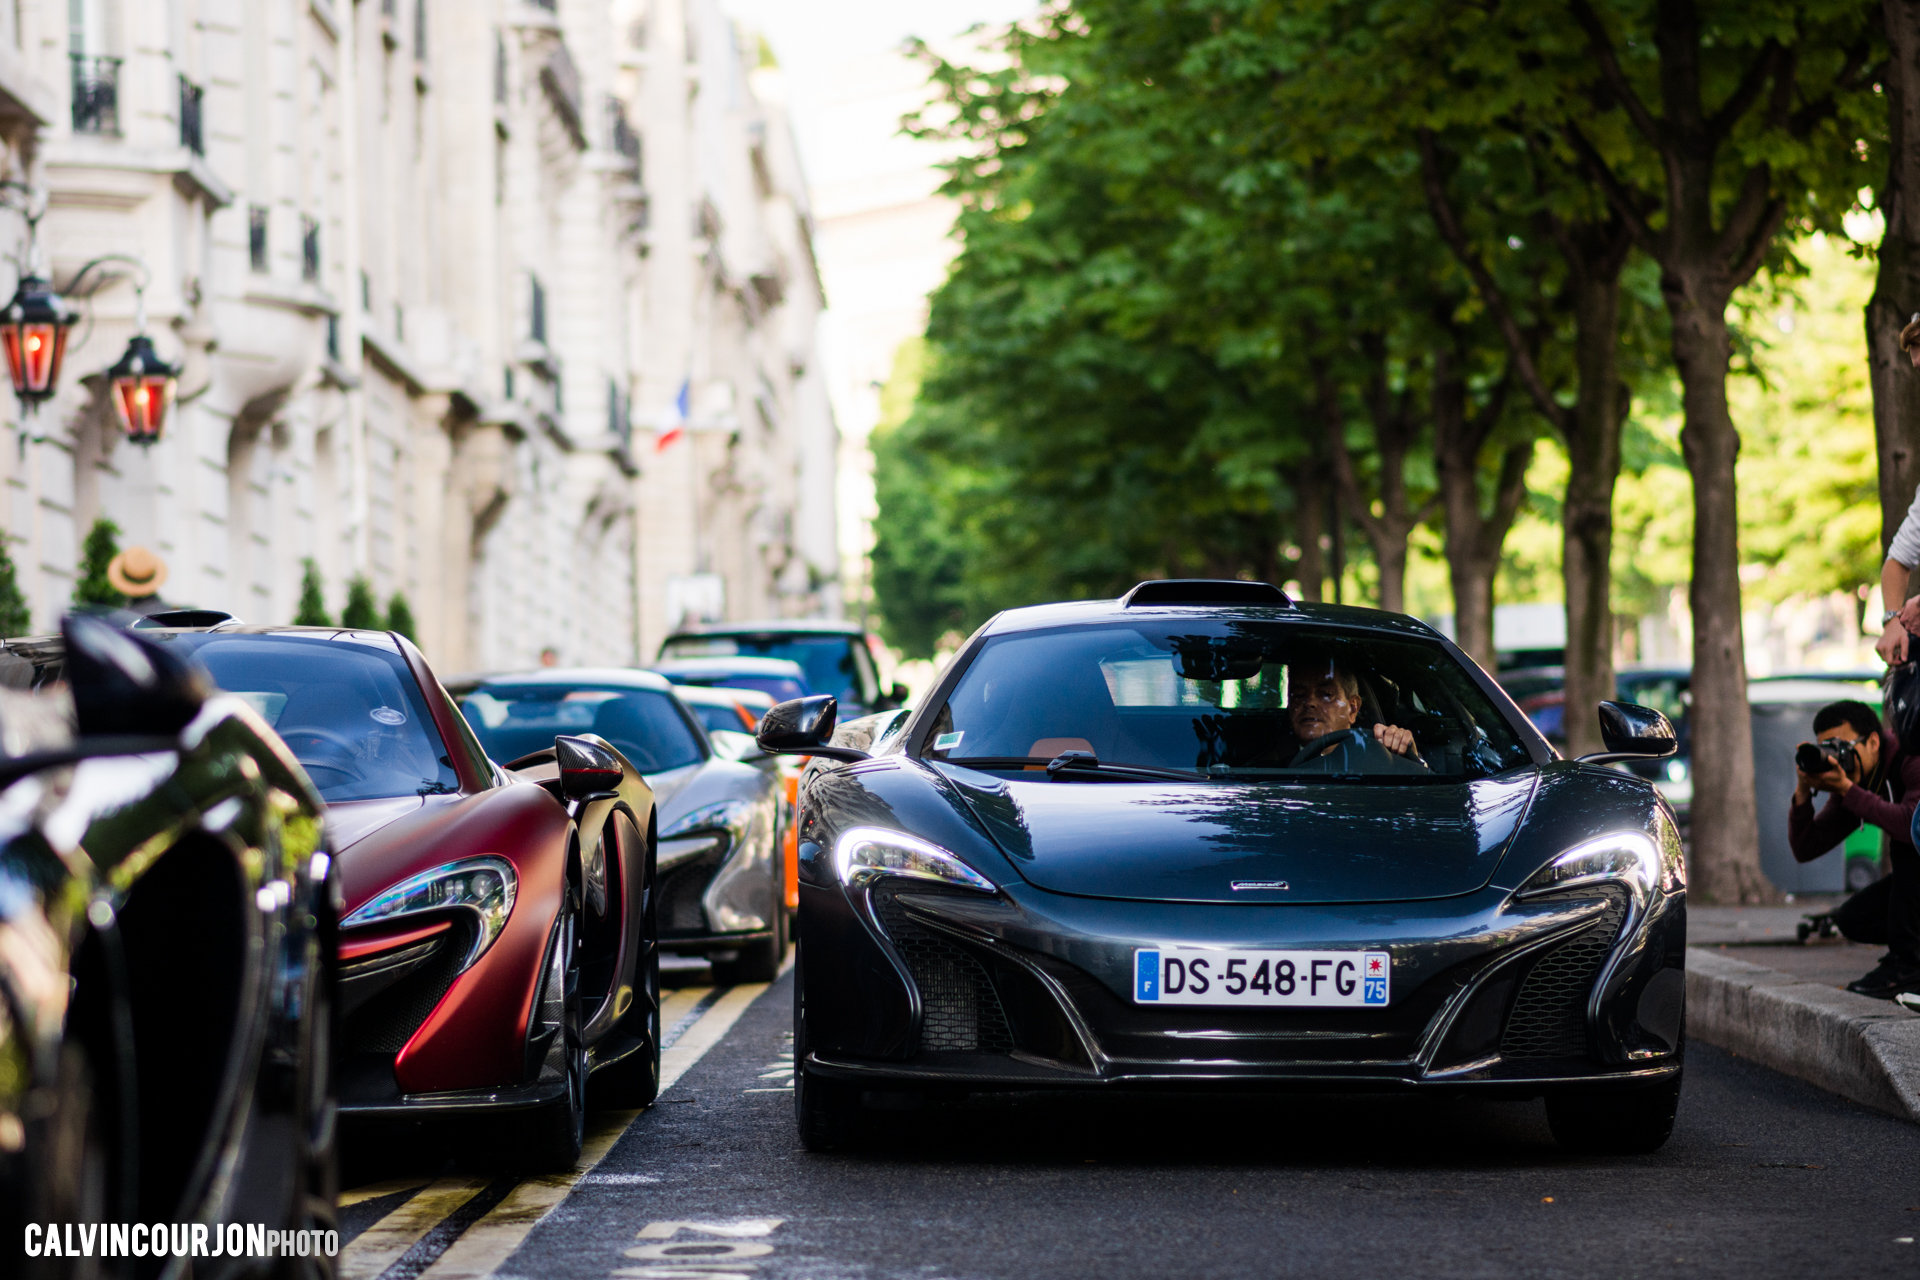 McLaren 650S - Edition Le Mans by MSO - avant - 2015 - photo Calvin Courjon